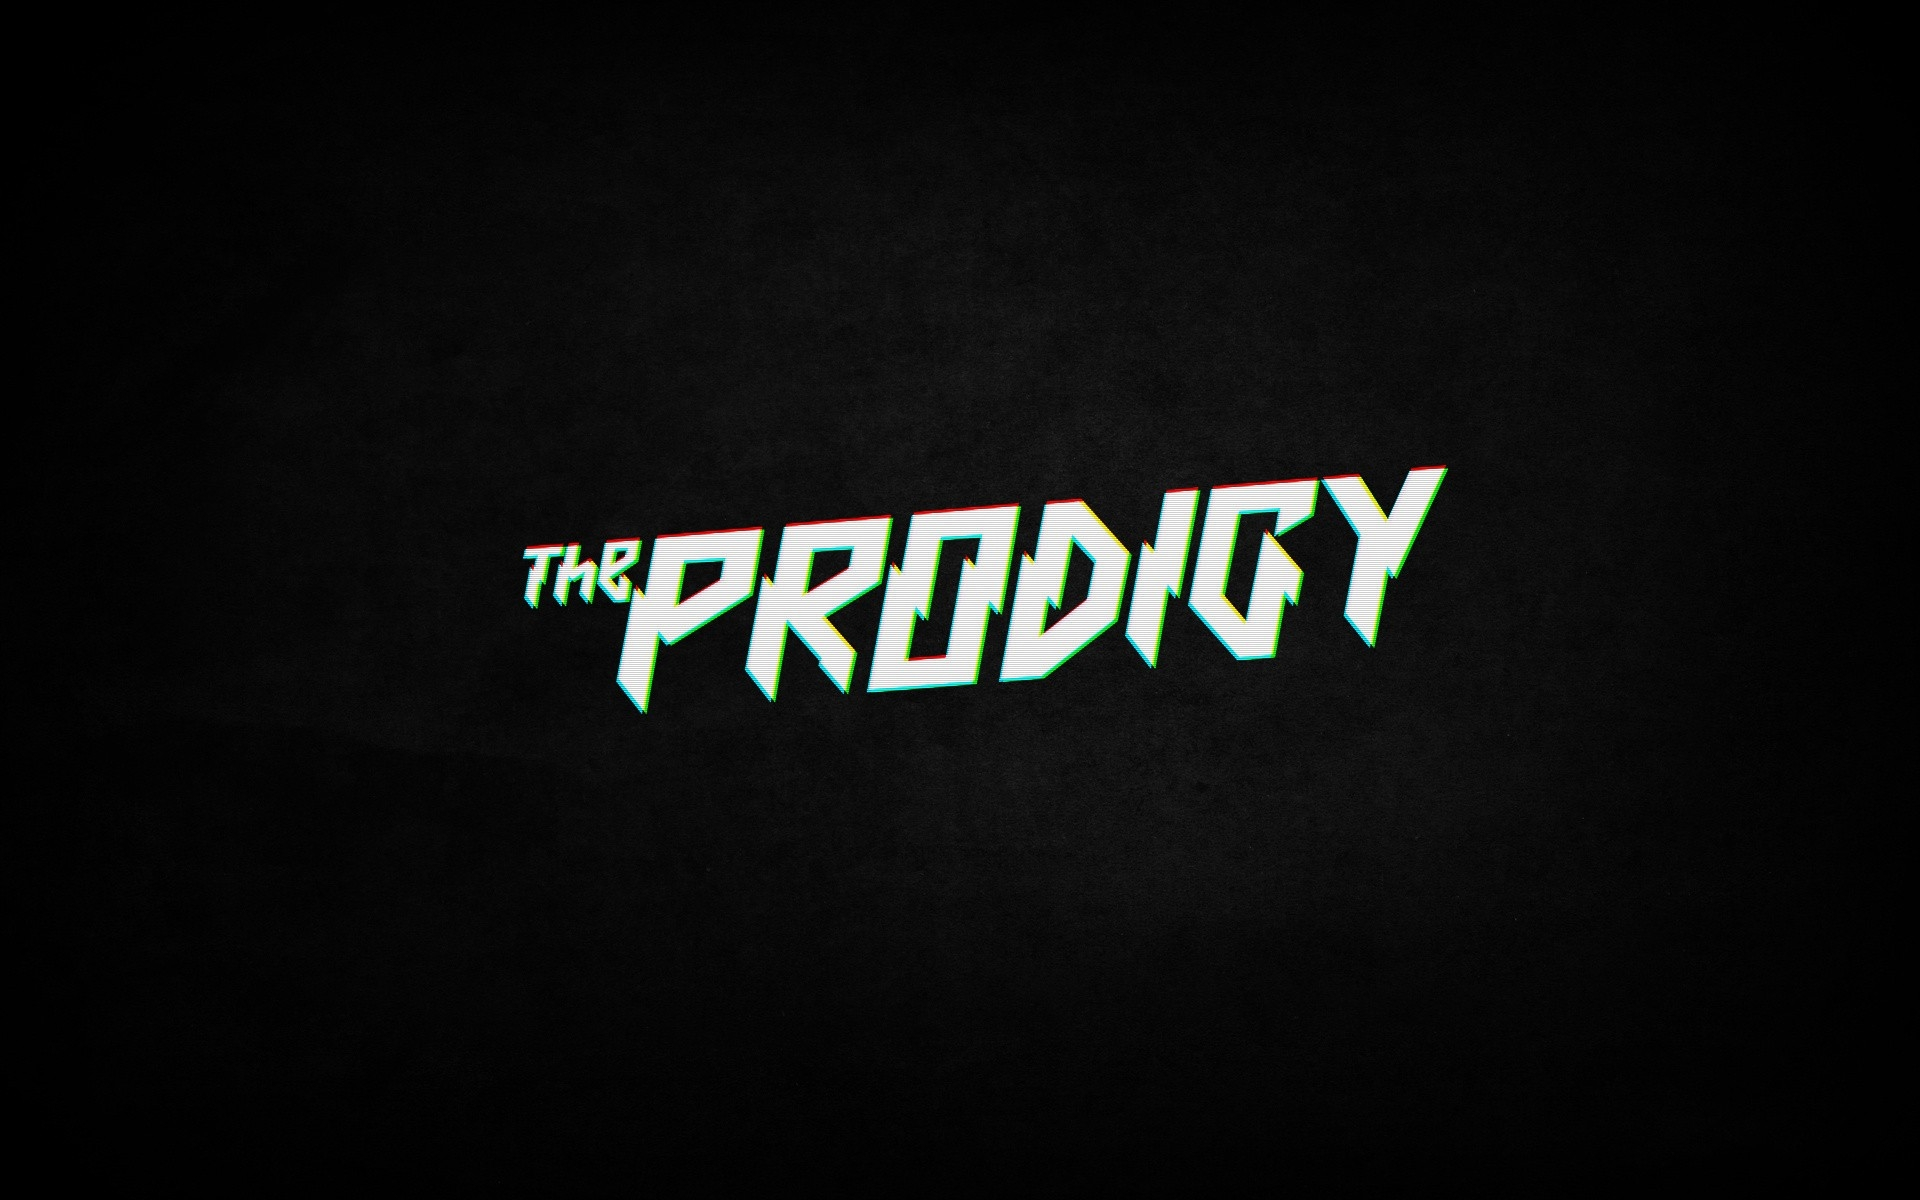 1920x1200 - Prodigy Wallpapers 27